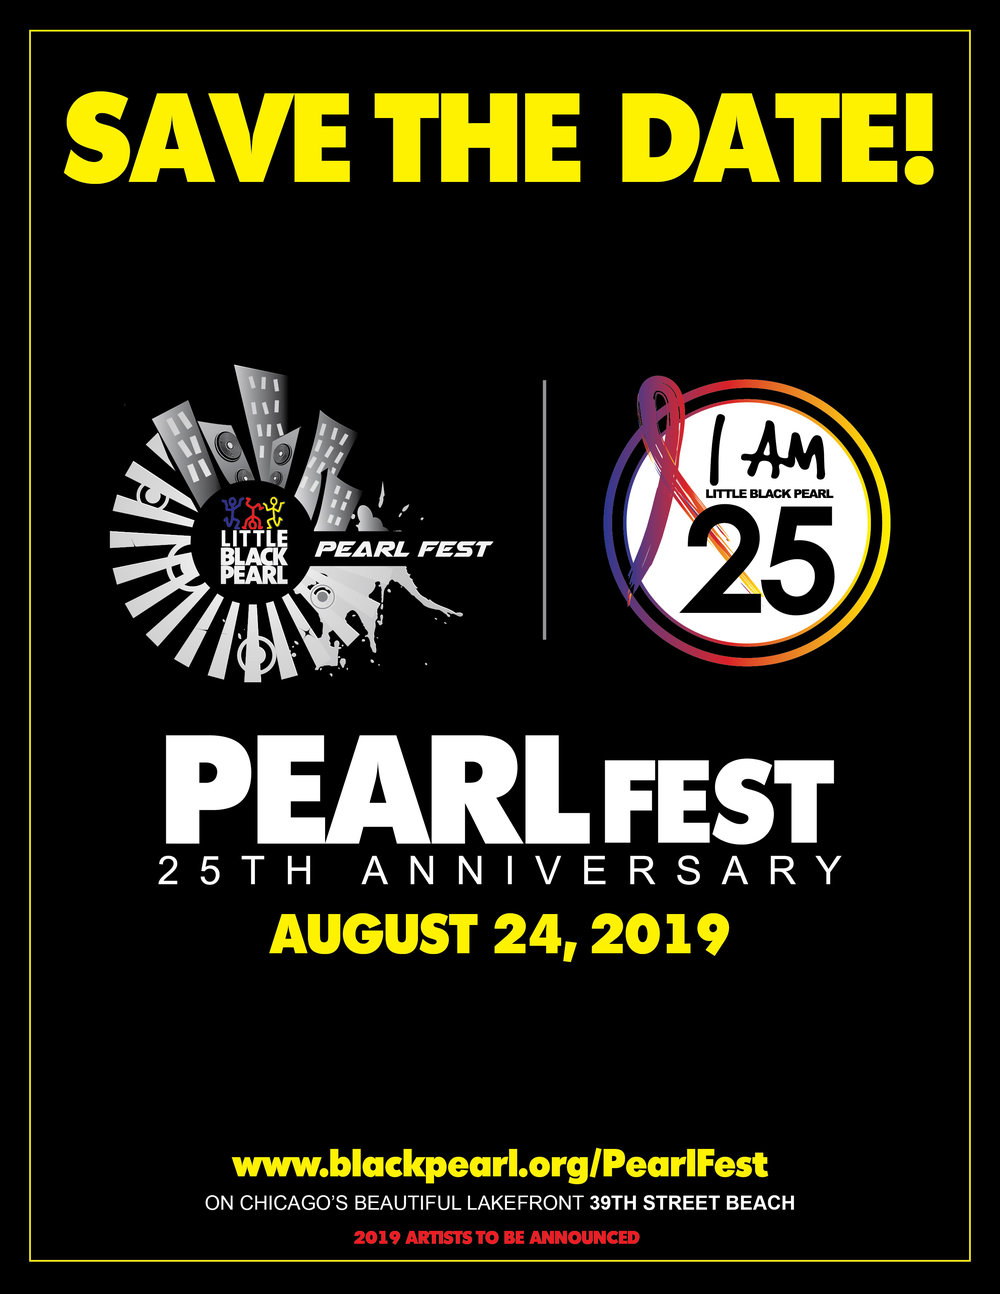 pearlfest 2019 save the date-02.jpg